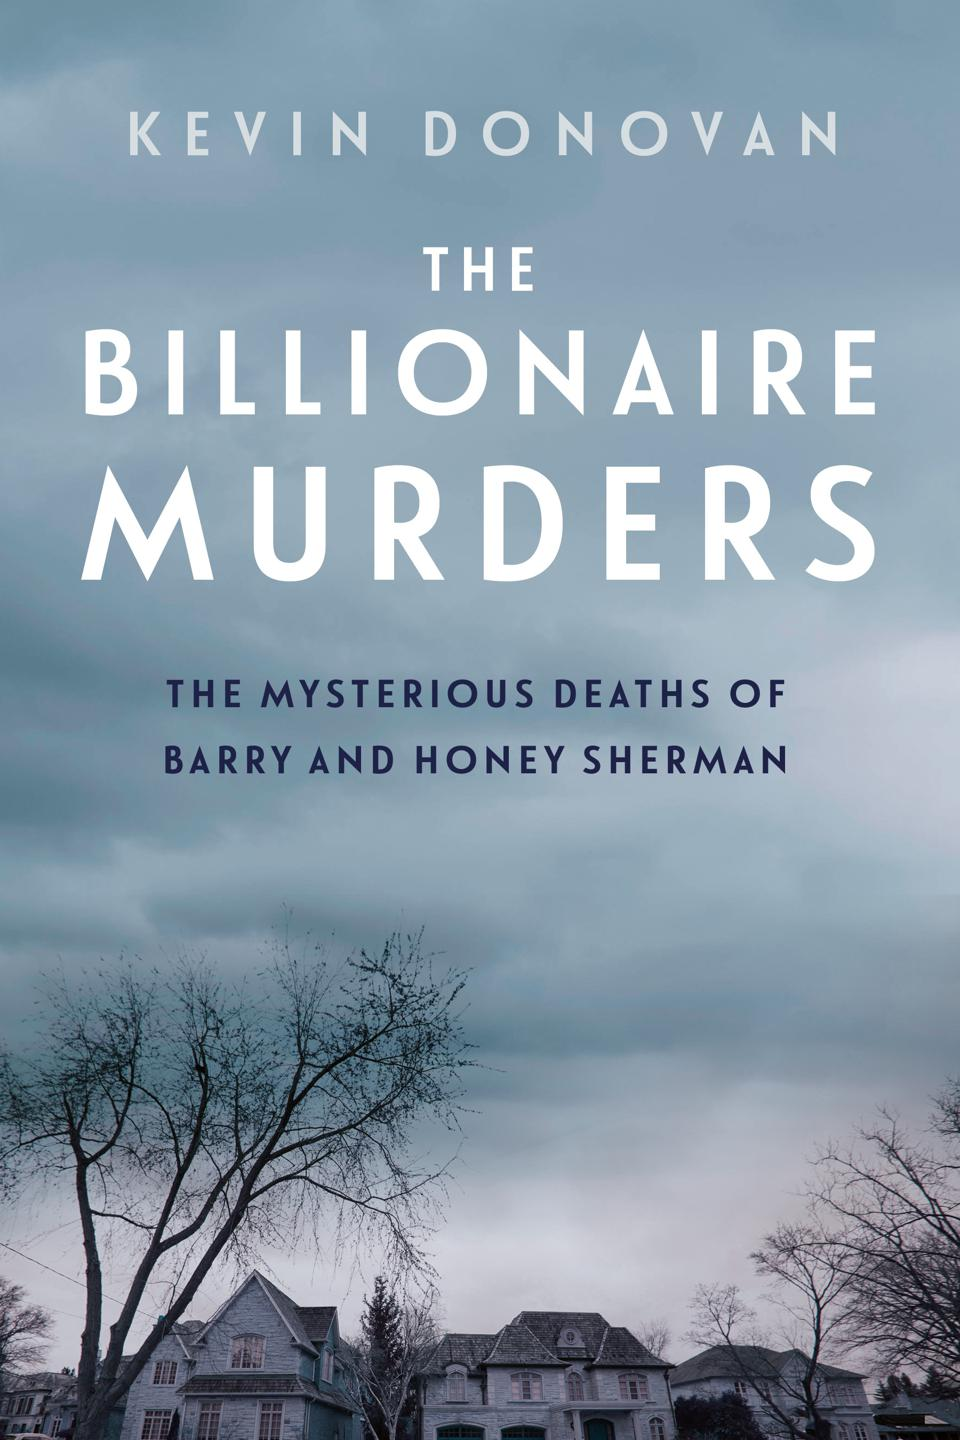 The Billionaire Murders by Kevin Donovan